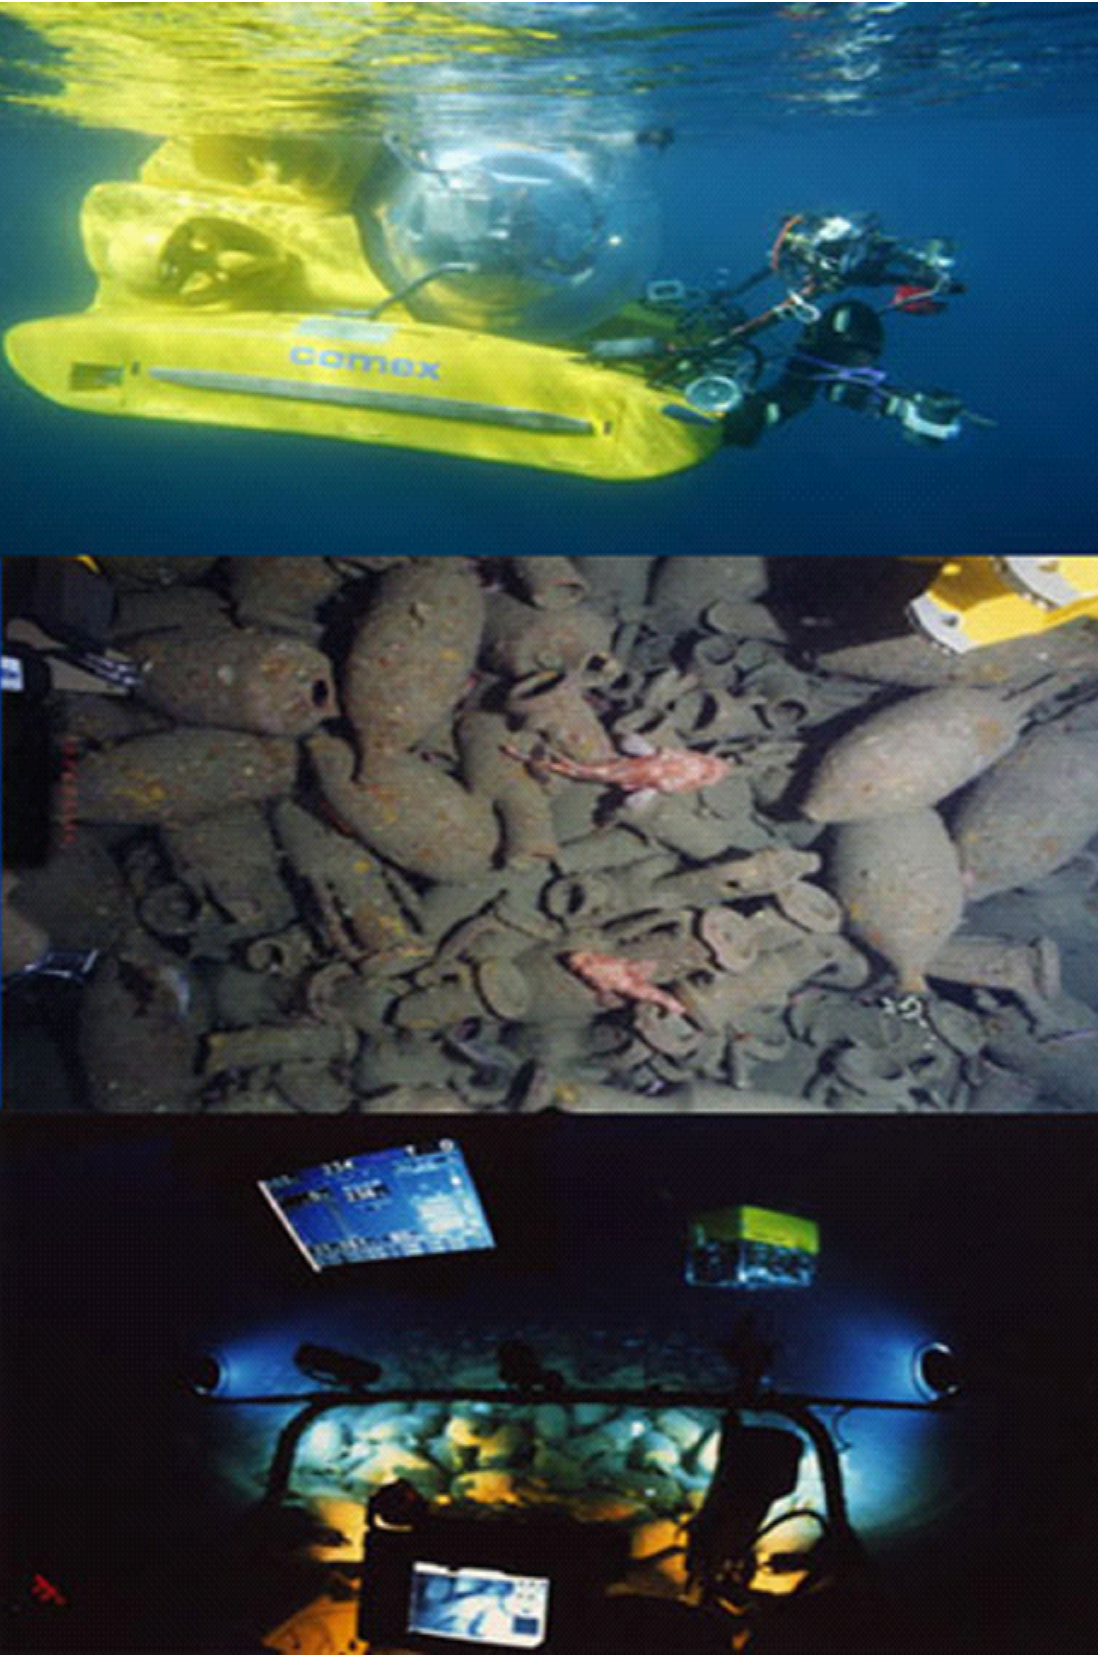 Montage of images from the Venus Project